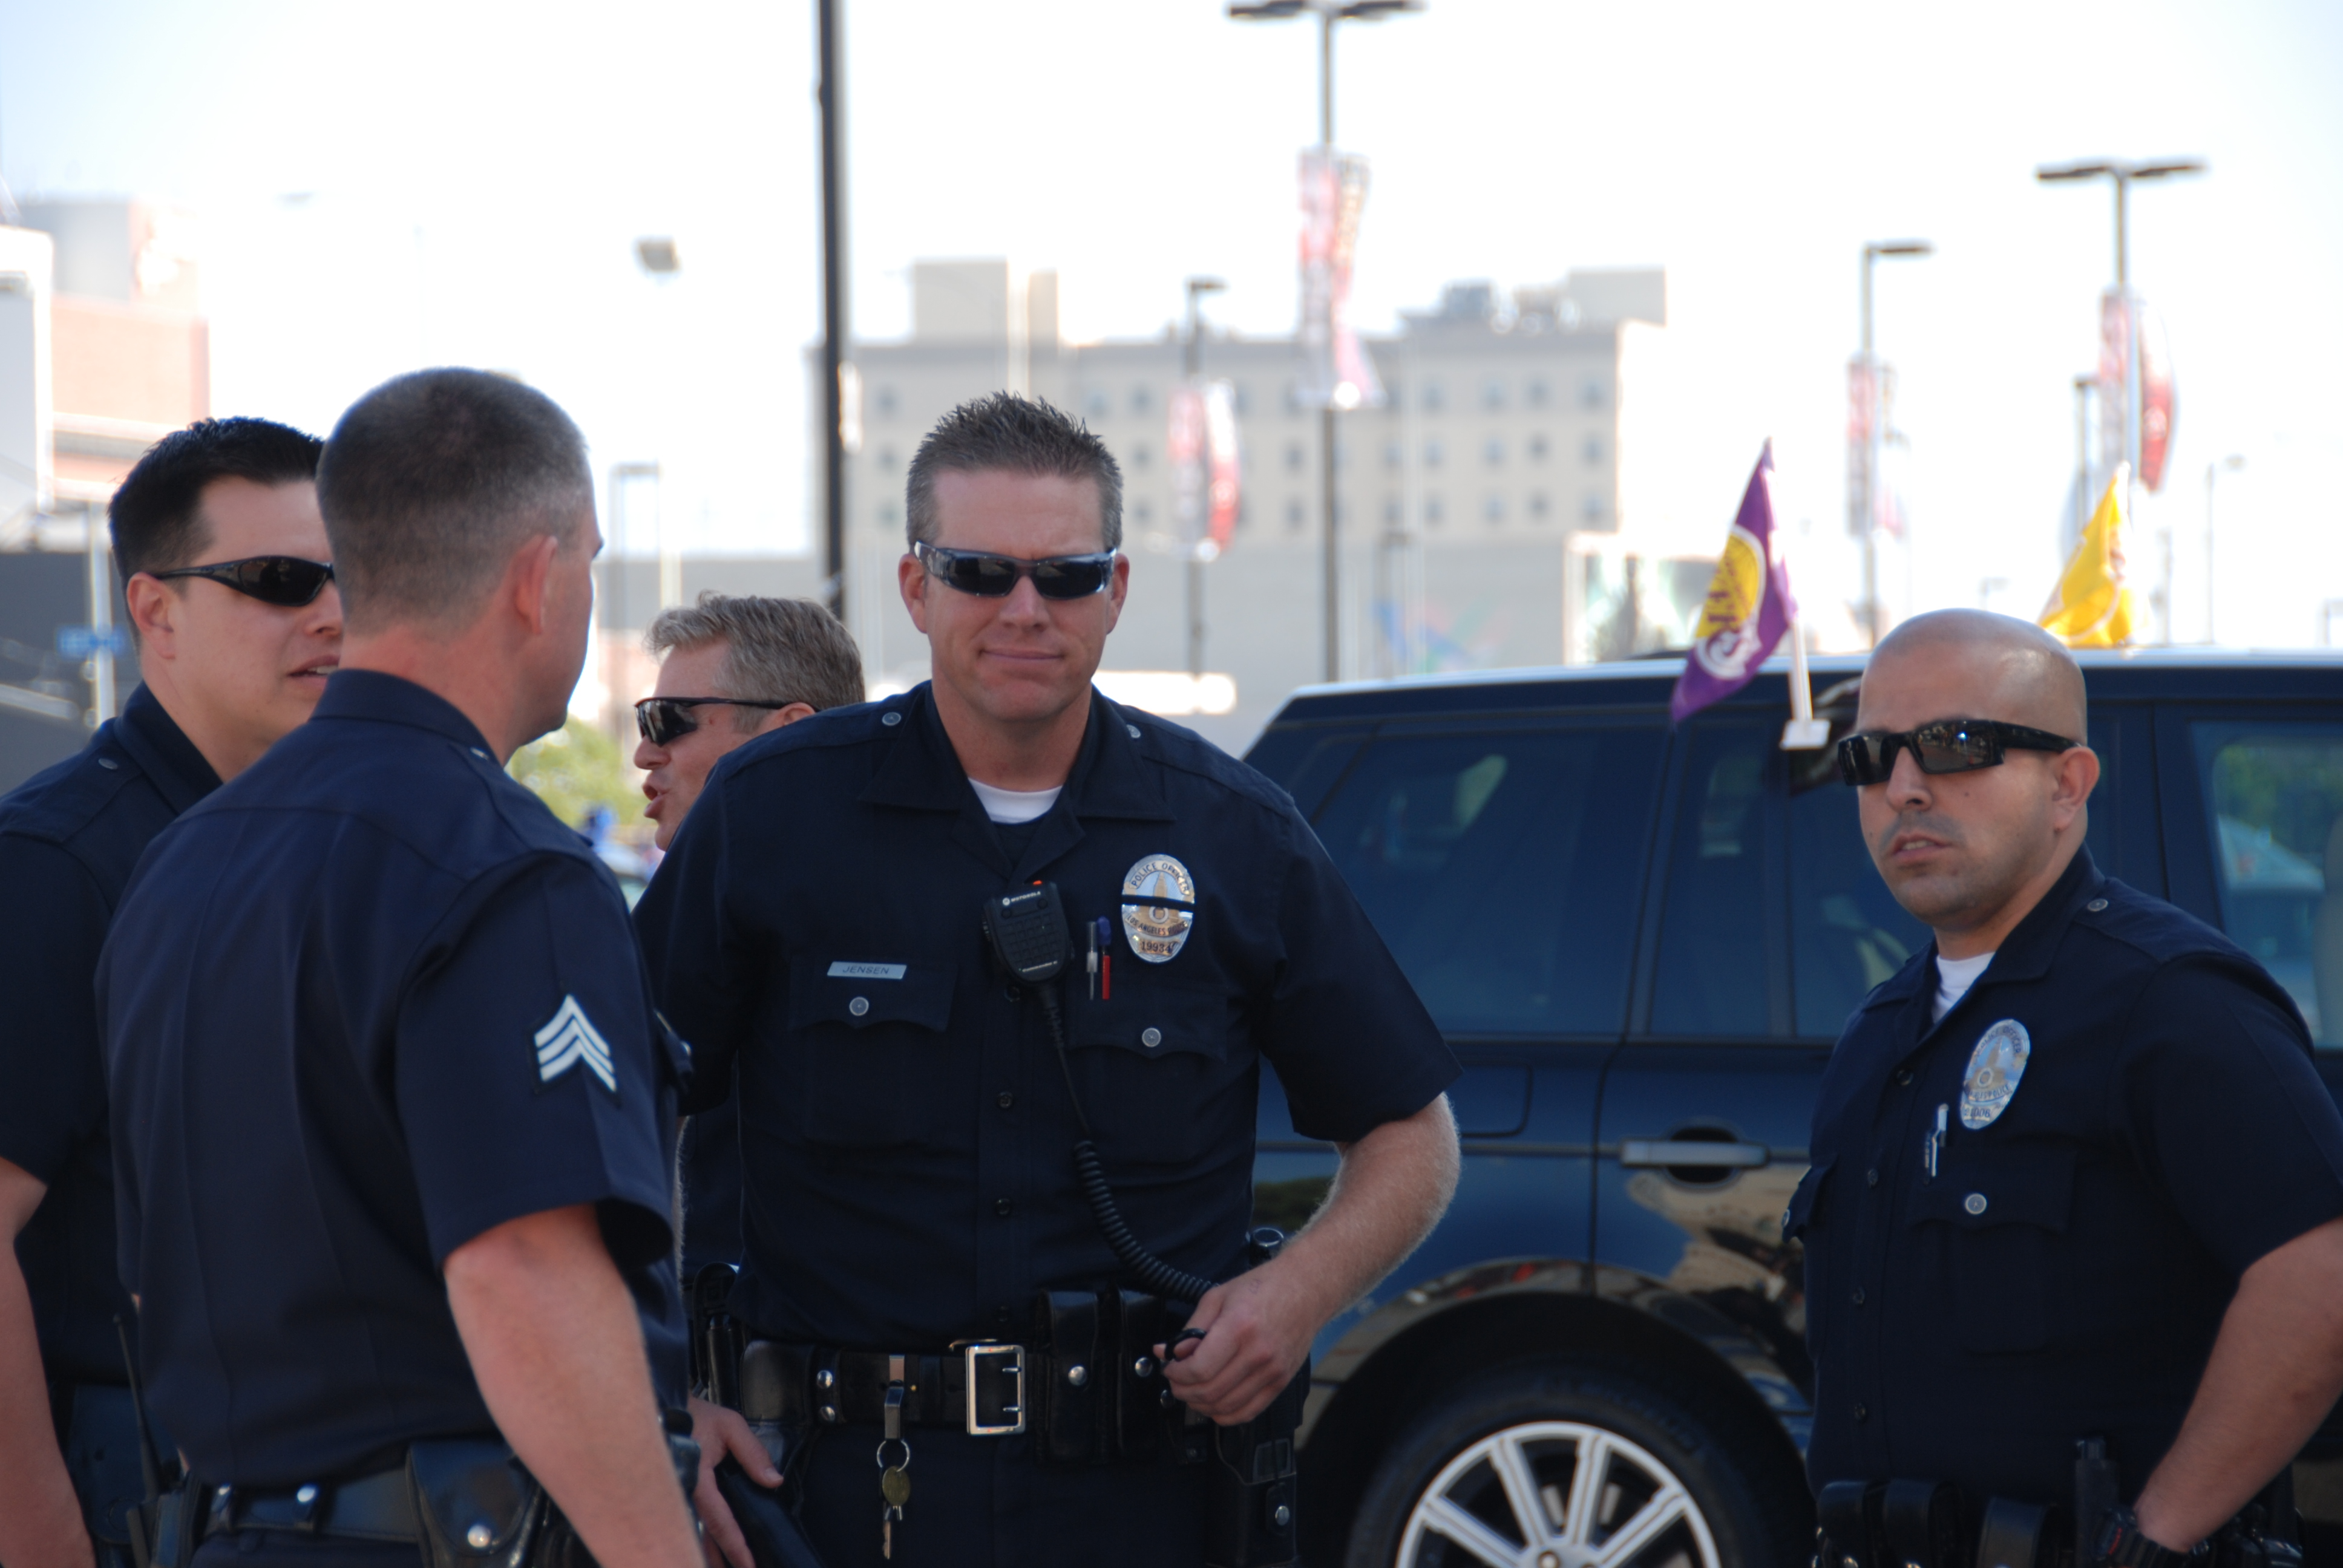 LAPD_Staples_Center_Officers_Patrol